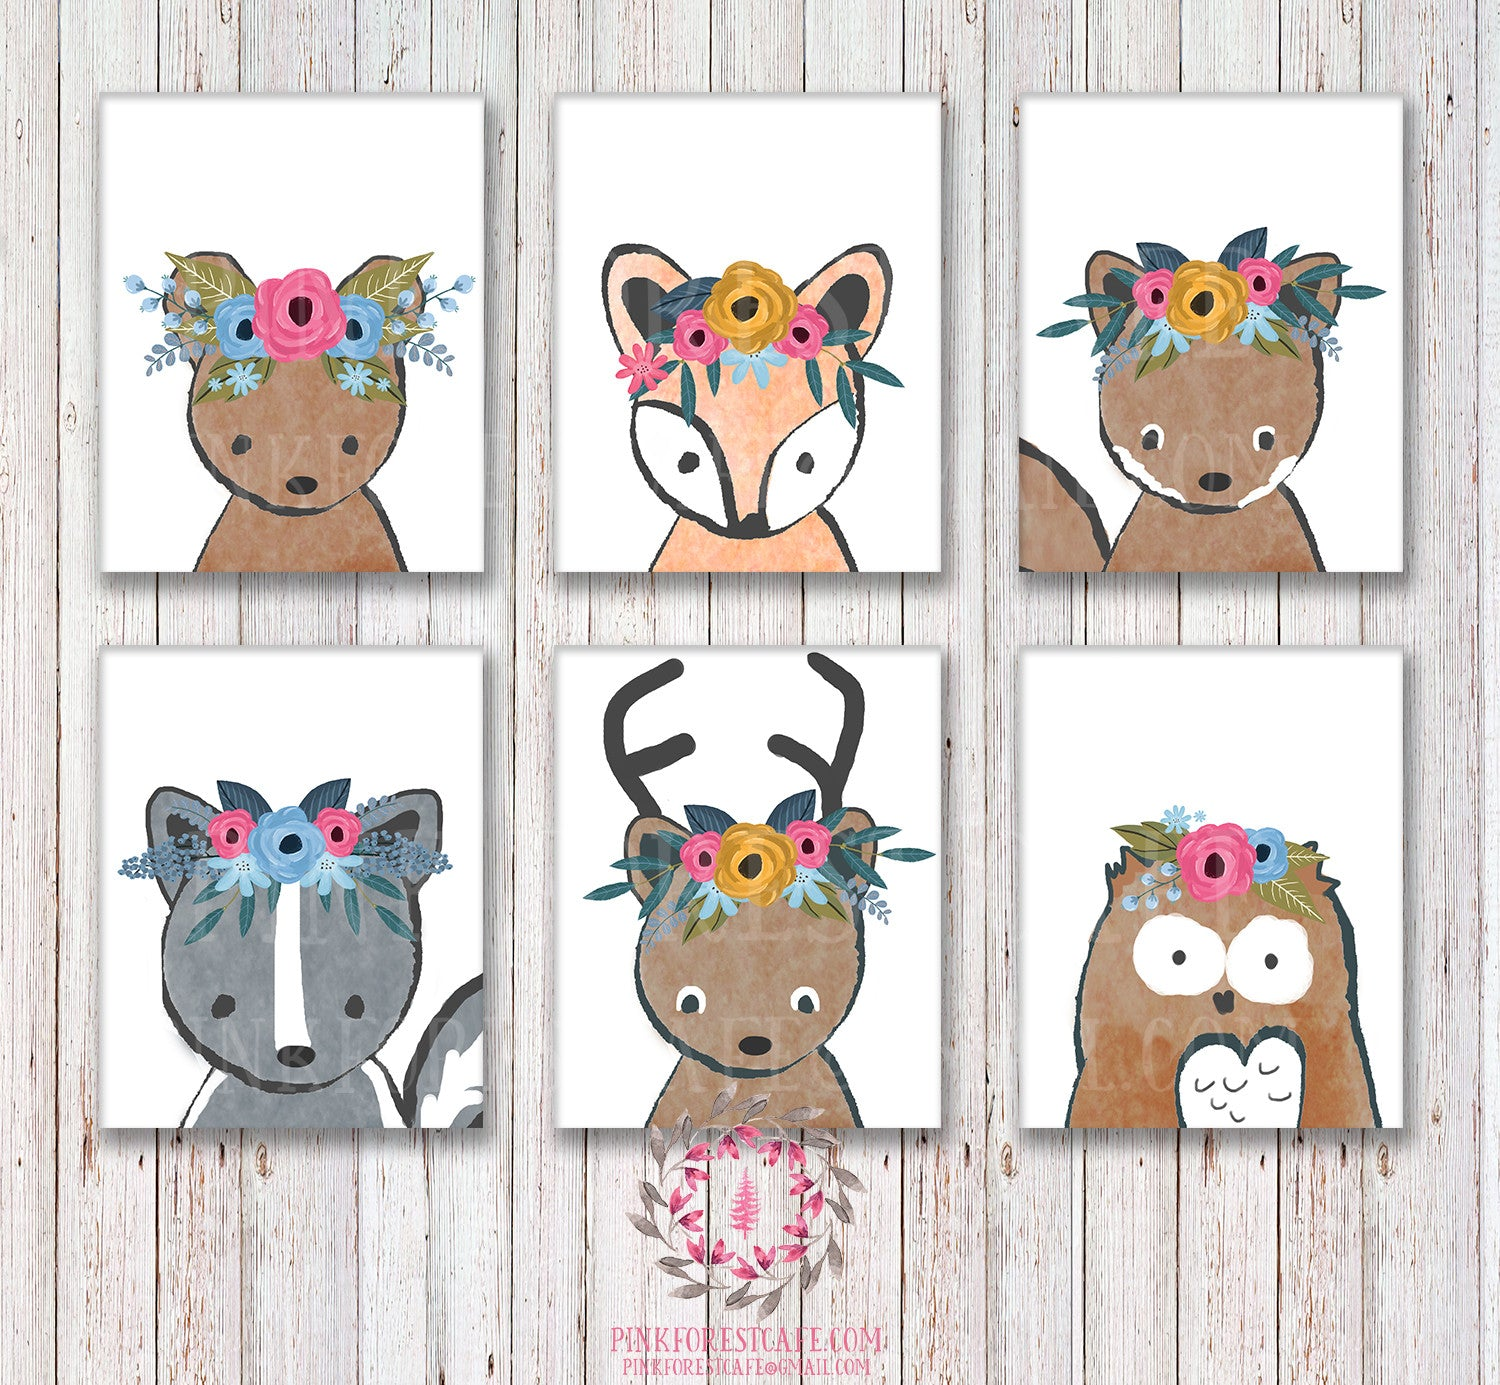 Lot of 6 Woodland Boho Bohemian Floral Nursery Baby Girl Room Prints Printable Print Wall Art Decor